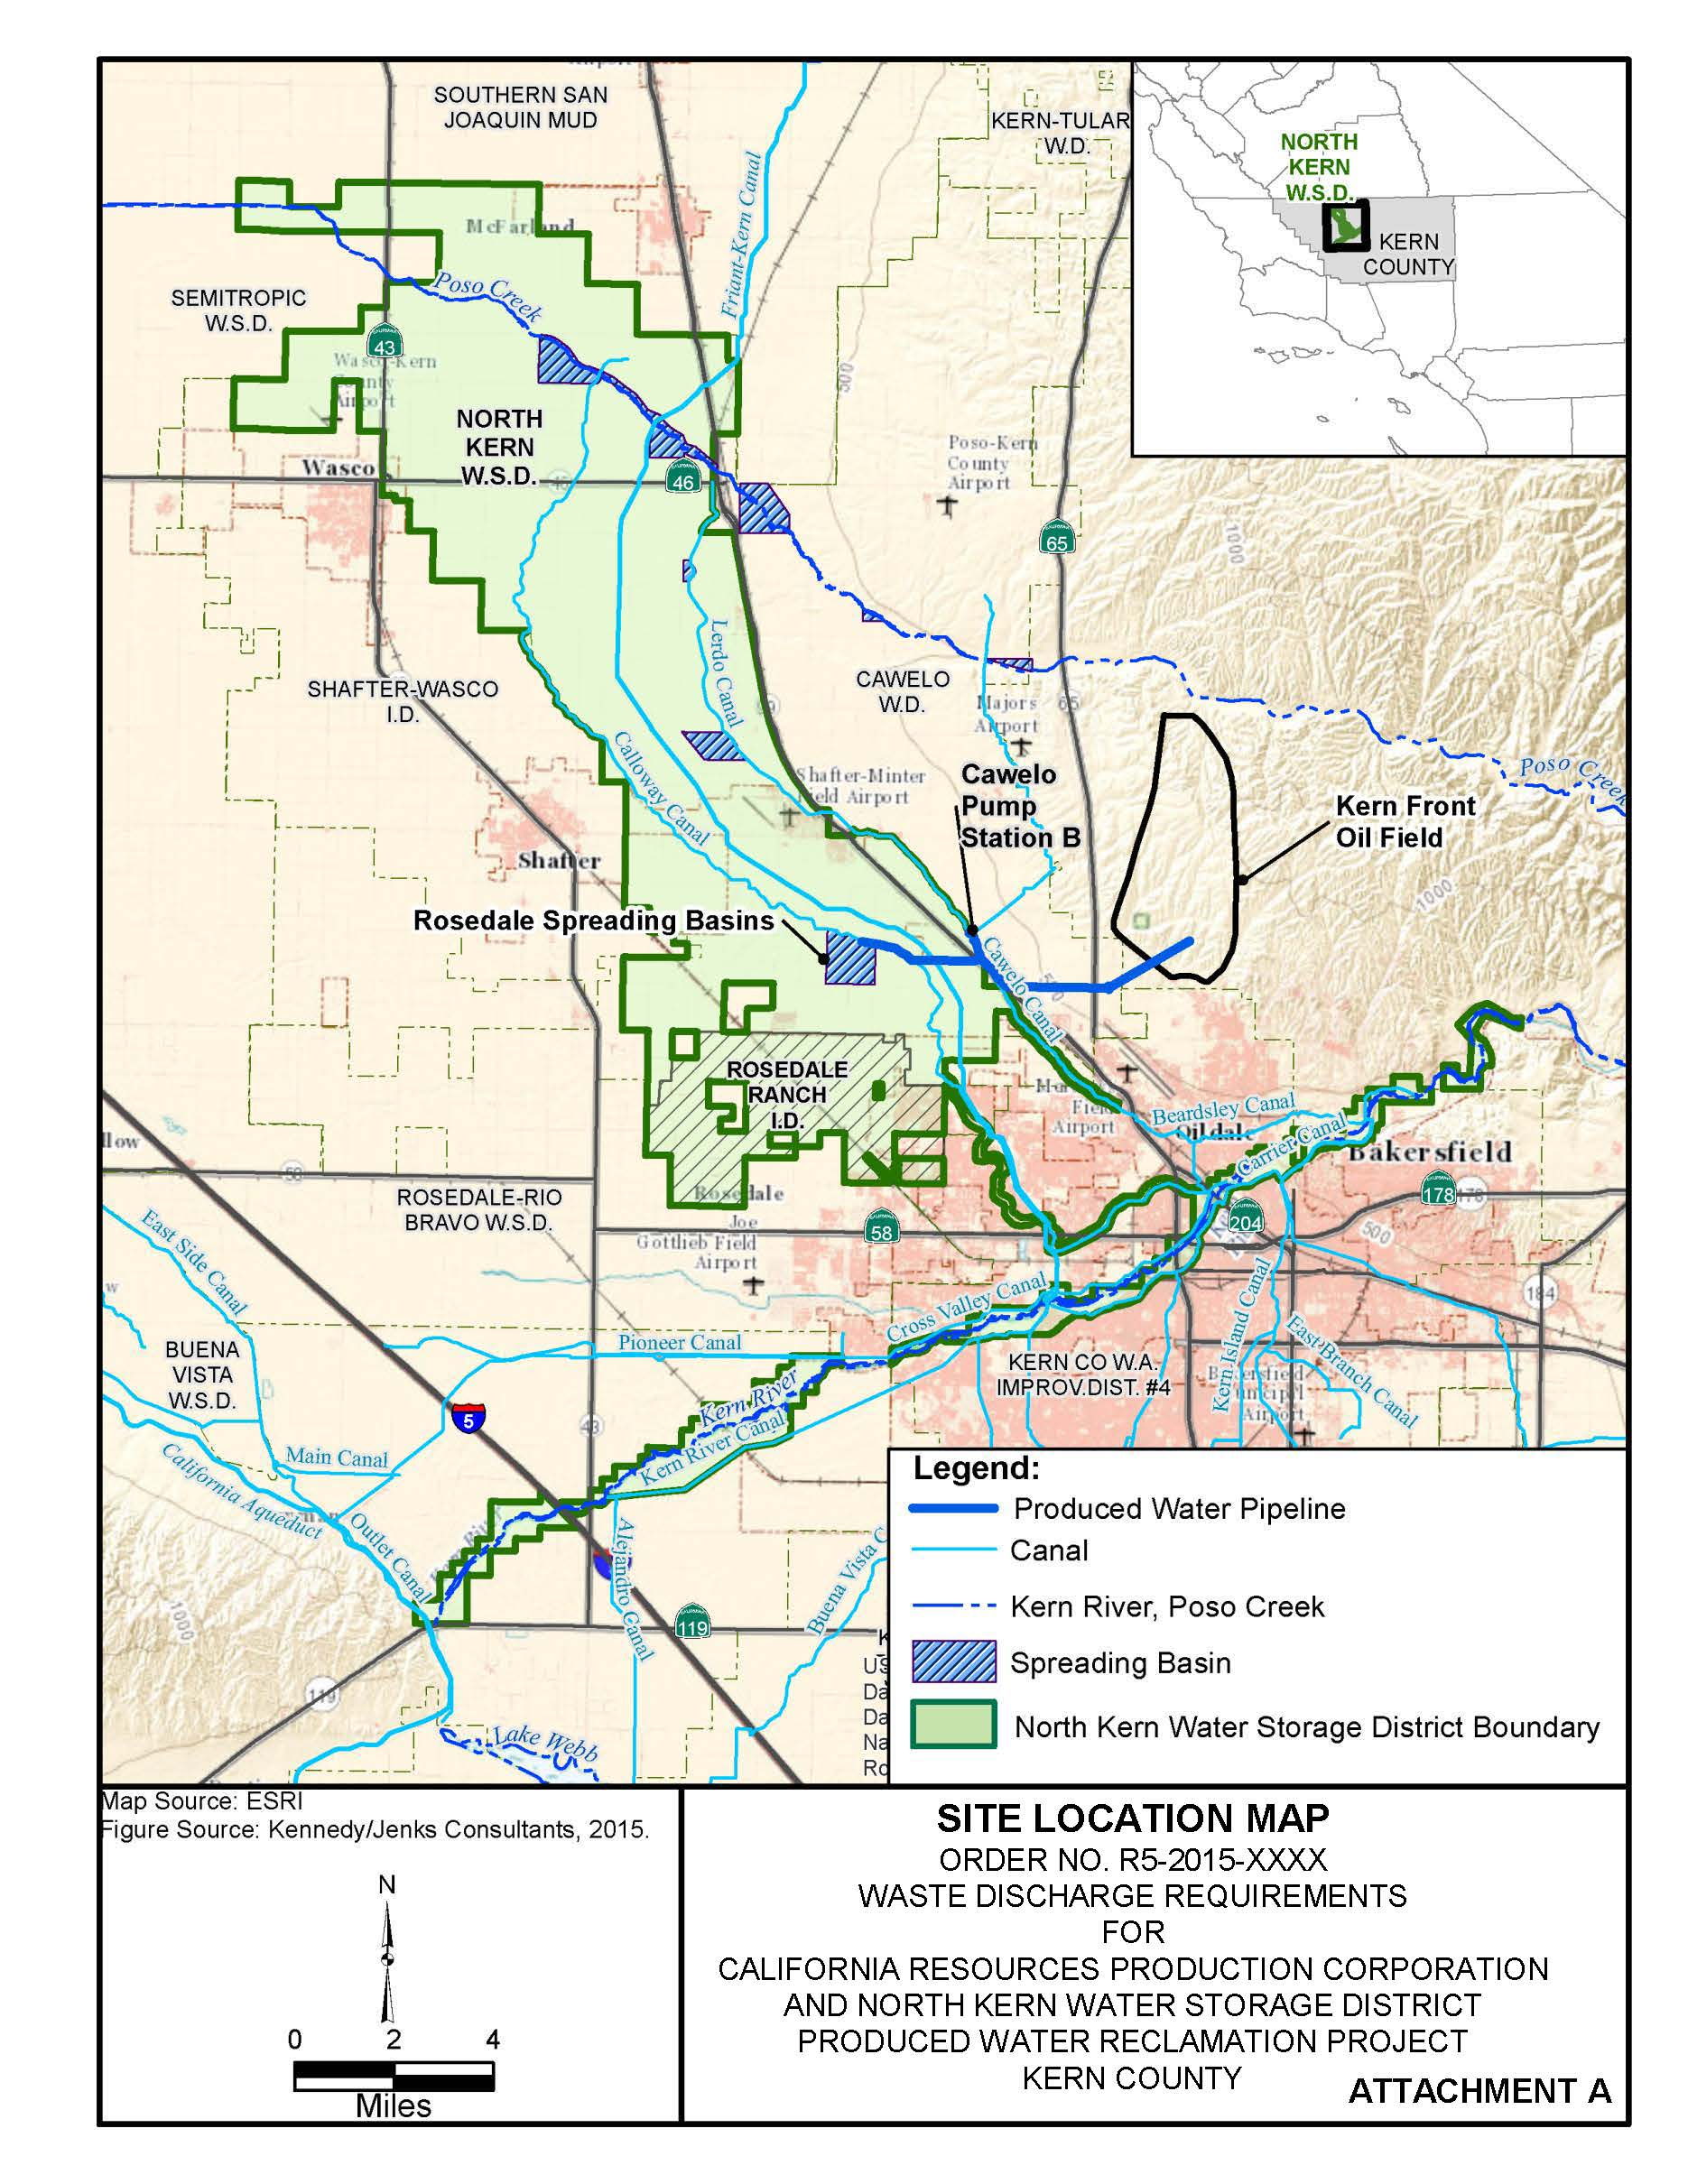 Site Location Map - California Resources Corporation